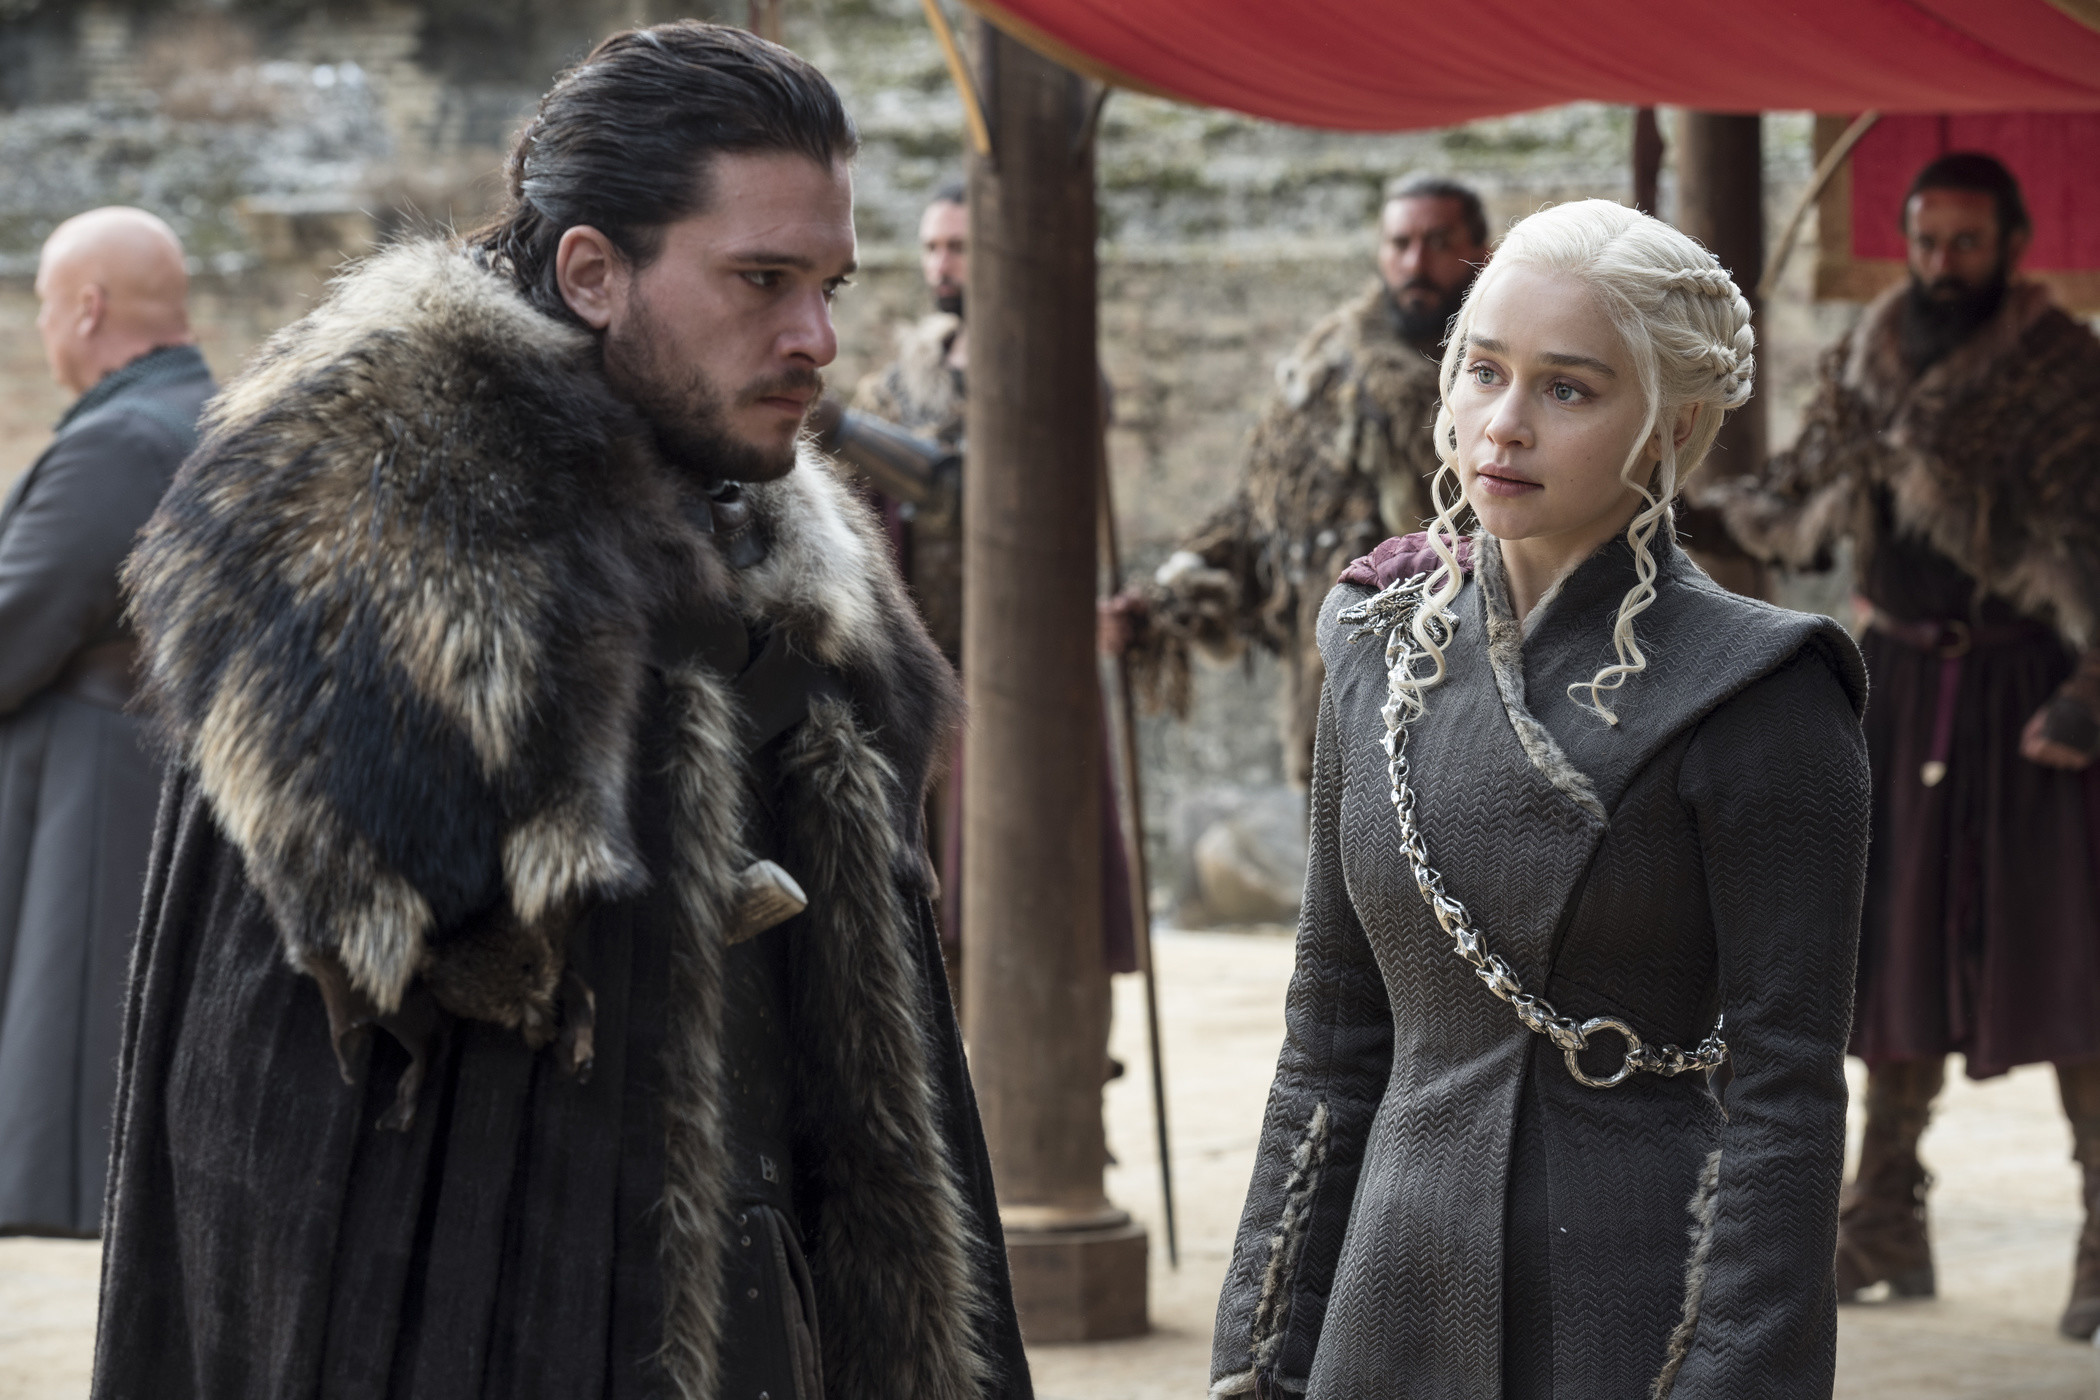 Jon Snow and his aunt and partner Daenerys Targaryen, The Game of Thrones, season 7